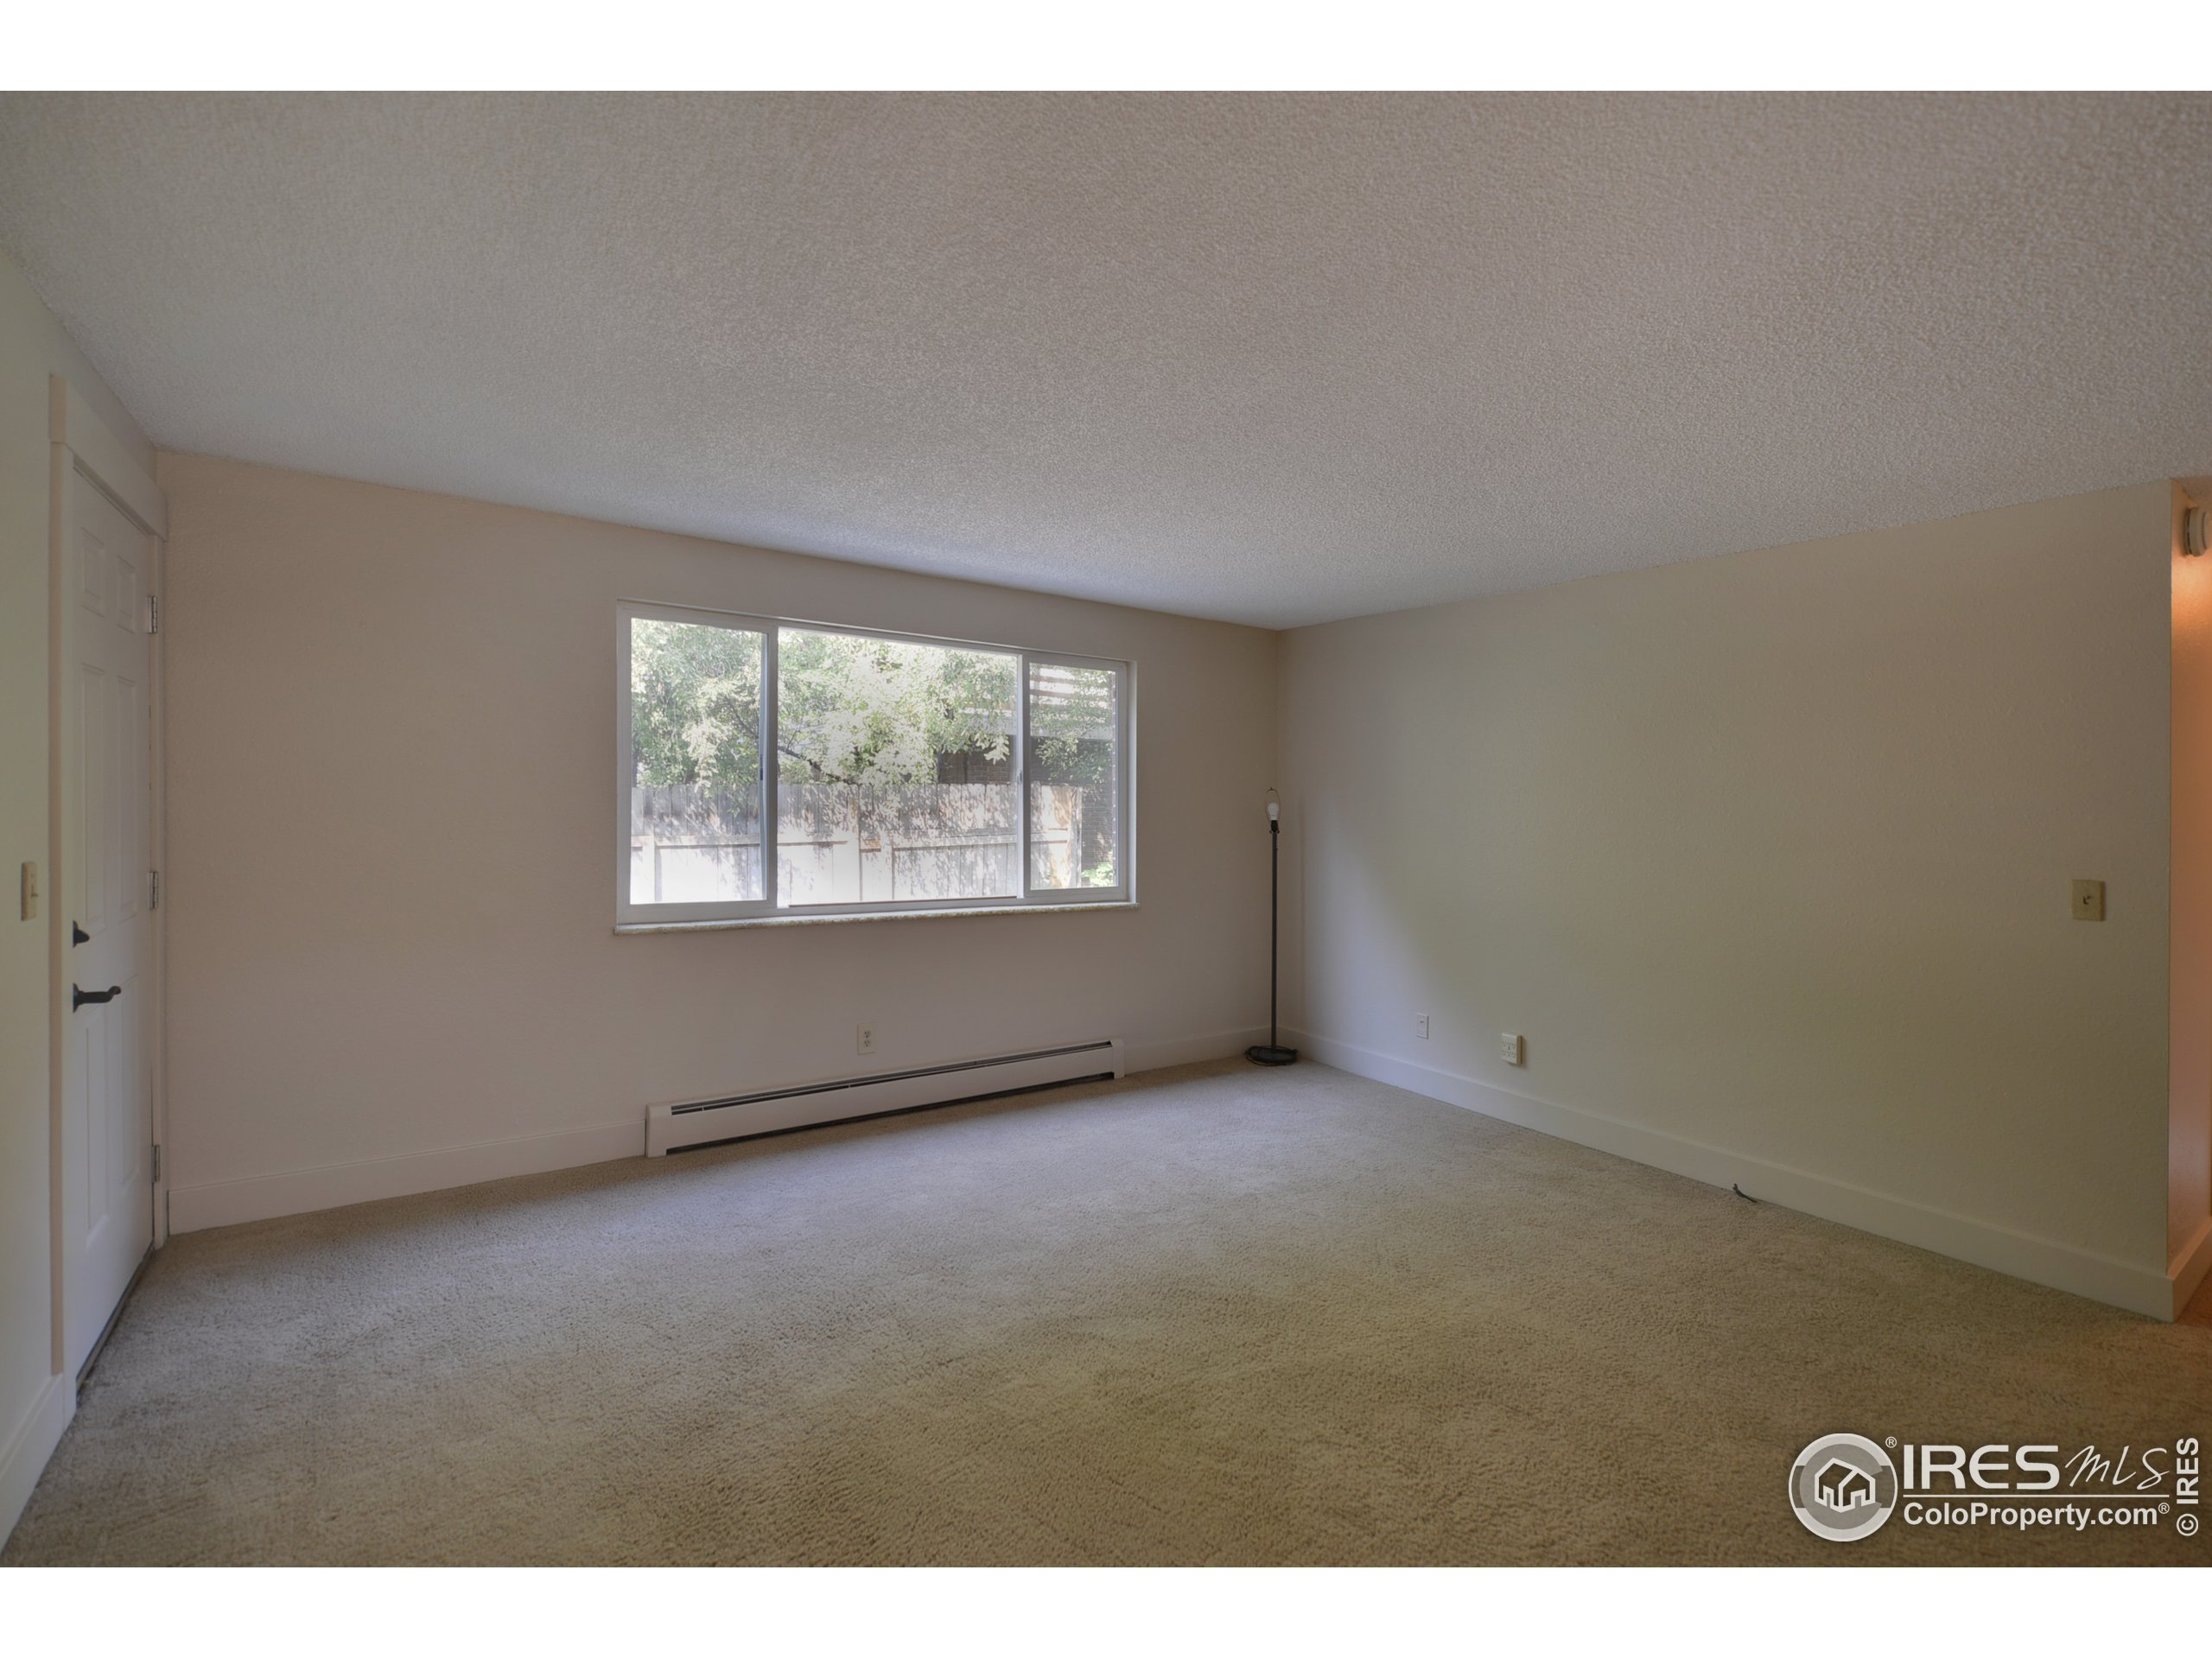 Large window and lots of wall space in the living room